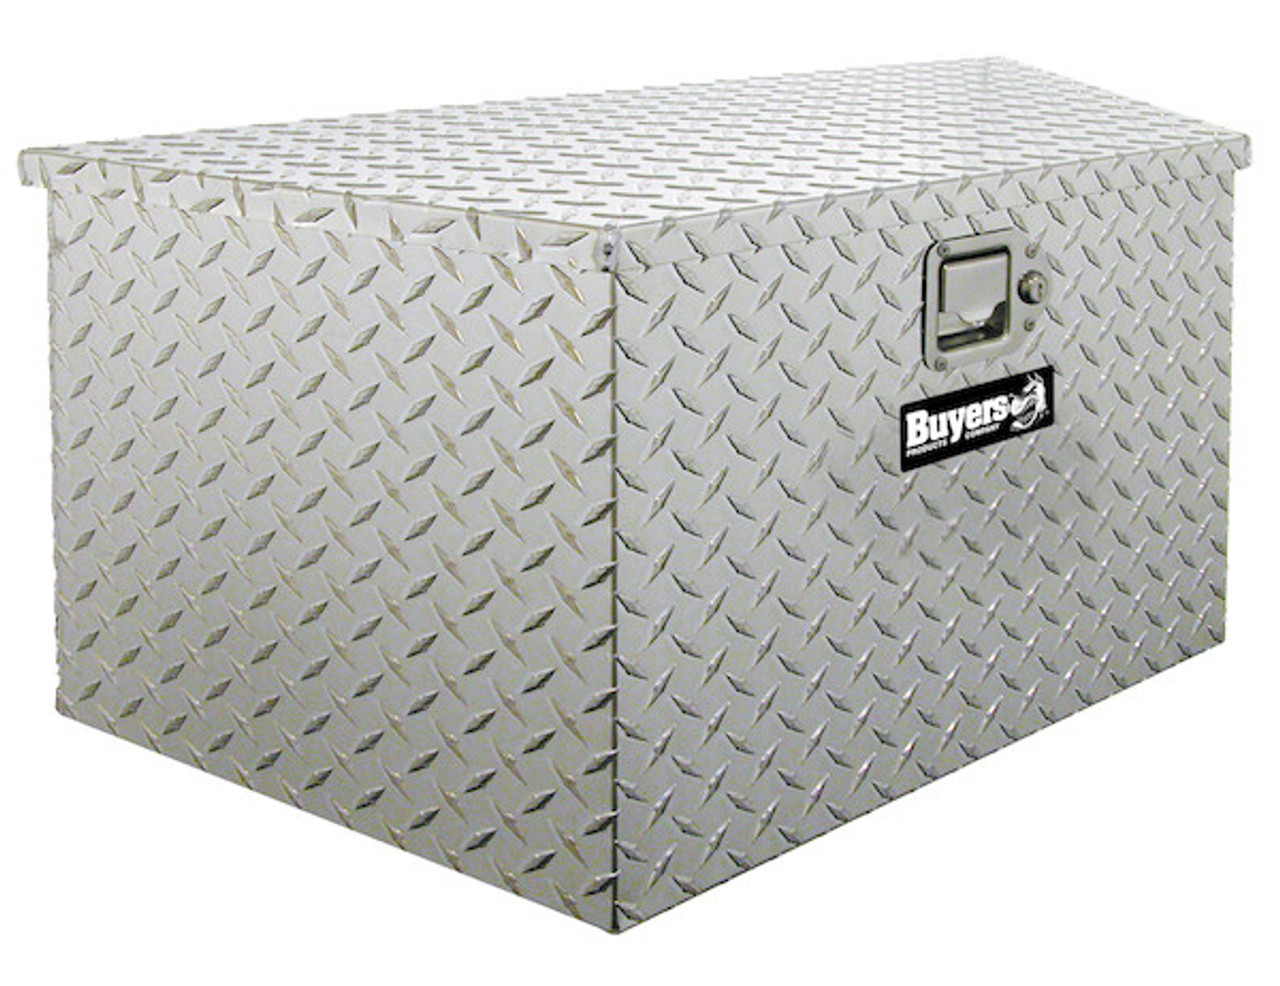 """1701385 BUYERS PRODUCTS DIAMOND TREAD ALUMINUM TRAILER TONGUE TRUCK TOOLBOX 18.5""""HX15""""DX49""""W PICTURE # 1"""